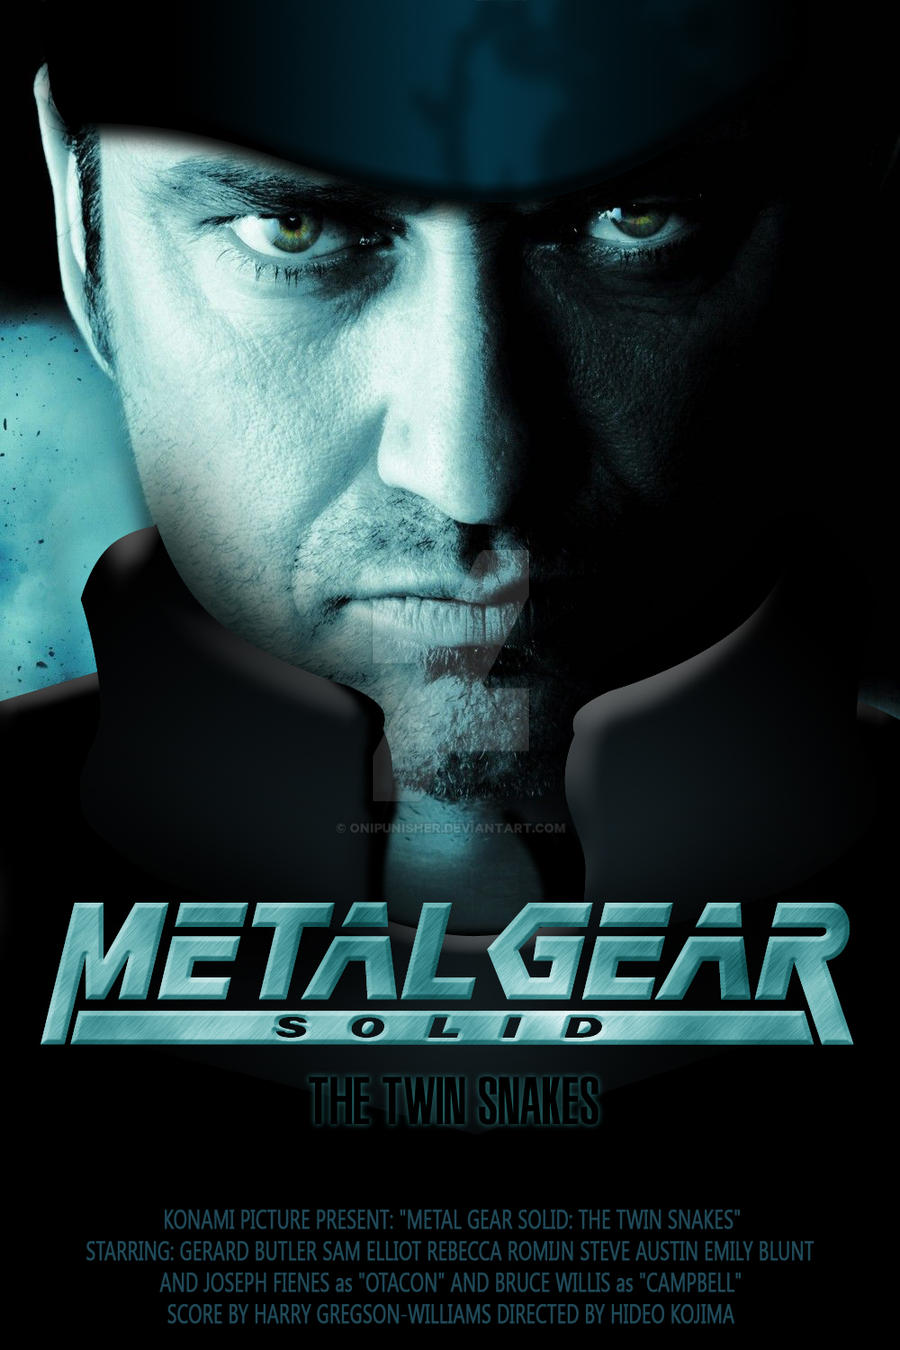 Mass Effect, Uncharted and Metal Gear SolidTHE MOVIES